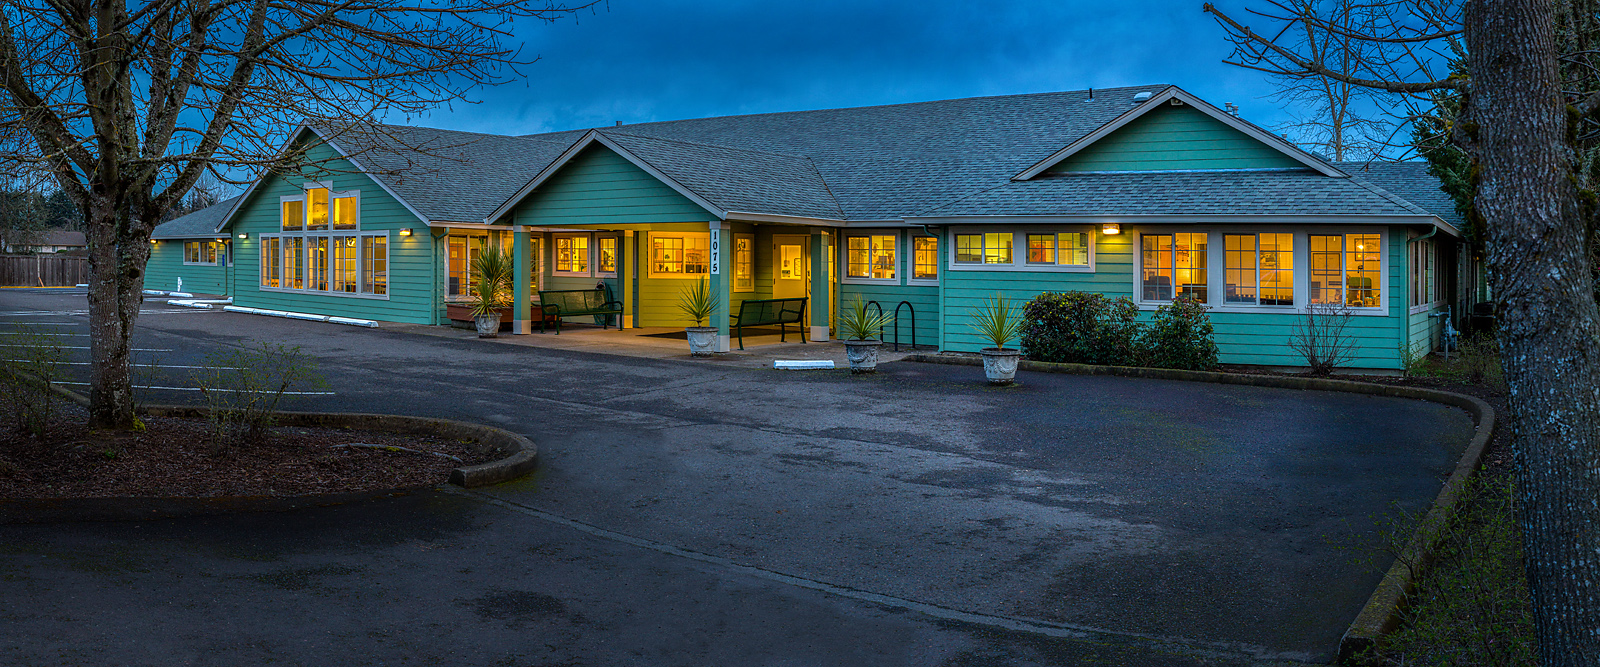 Holly Residential Care Center, front view at dusk